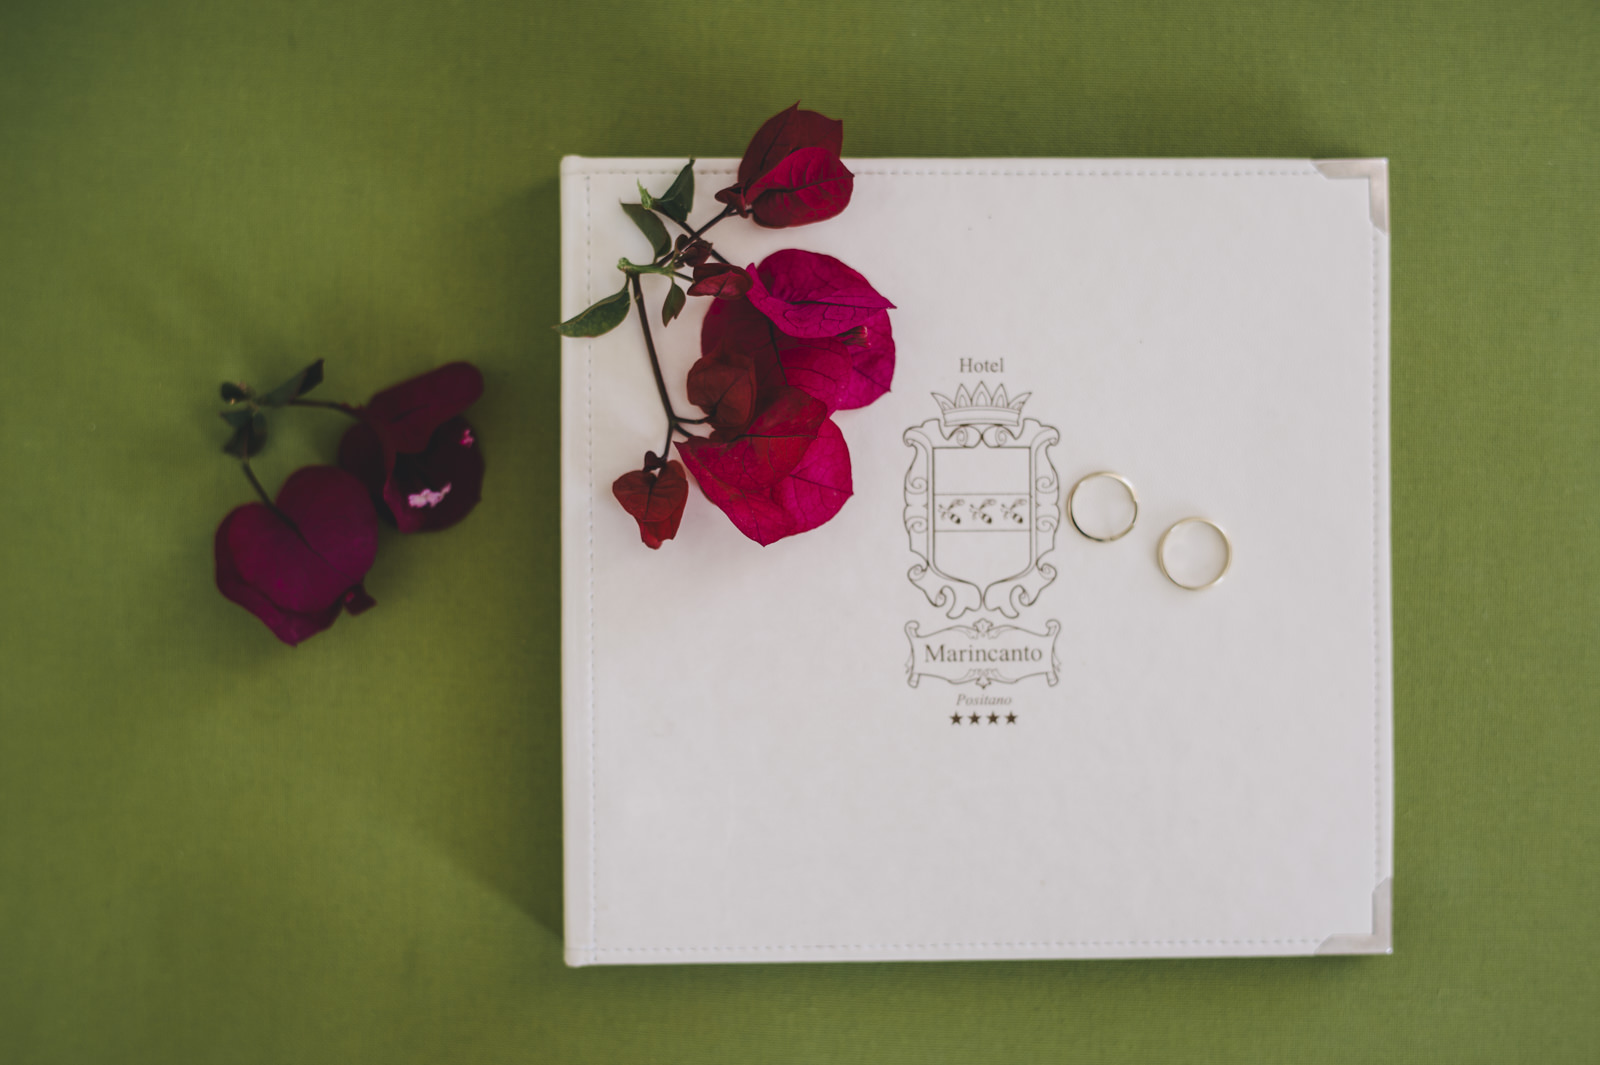 wedding rings on the invitation card with red flowers